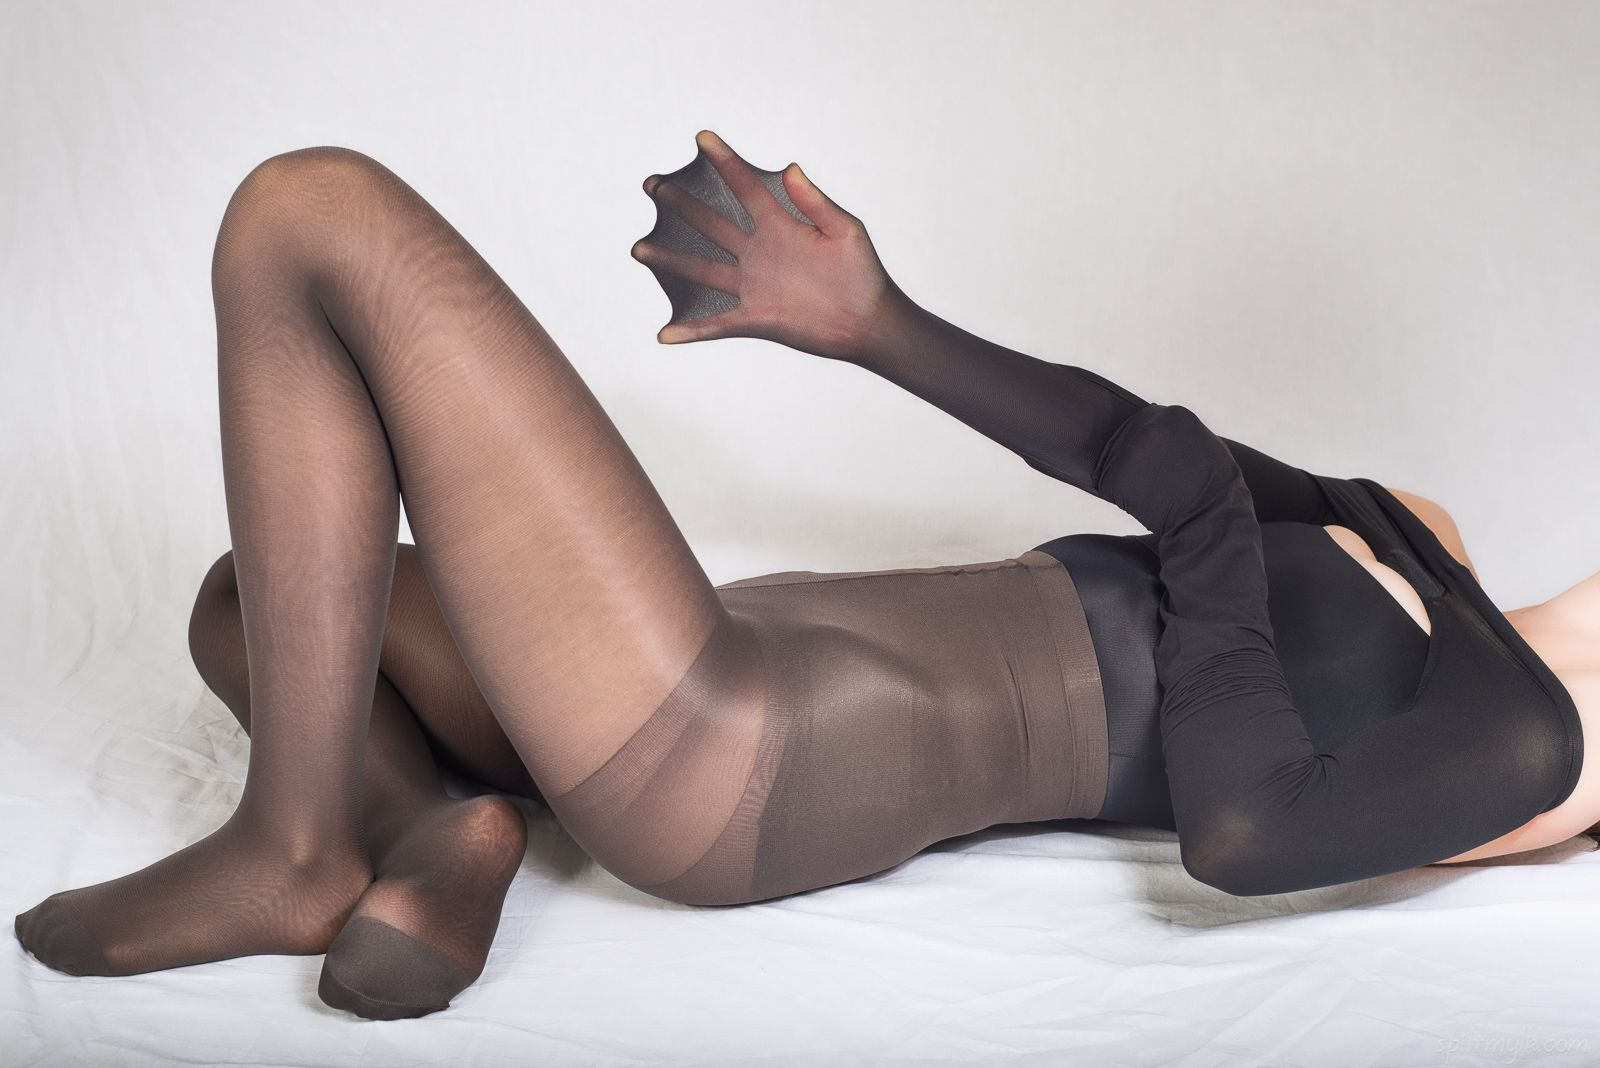 By pantyhose lovers — pic 14